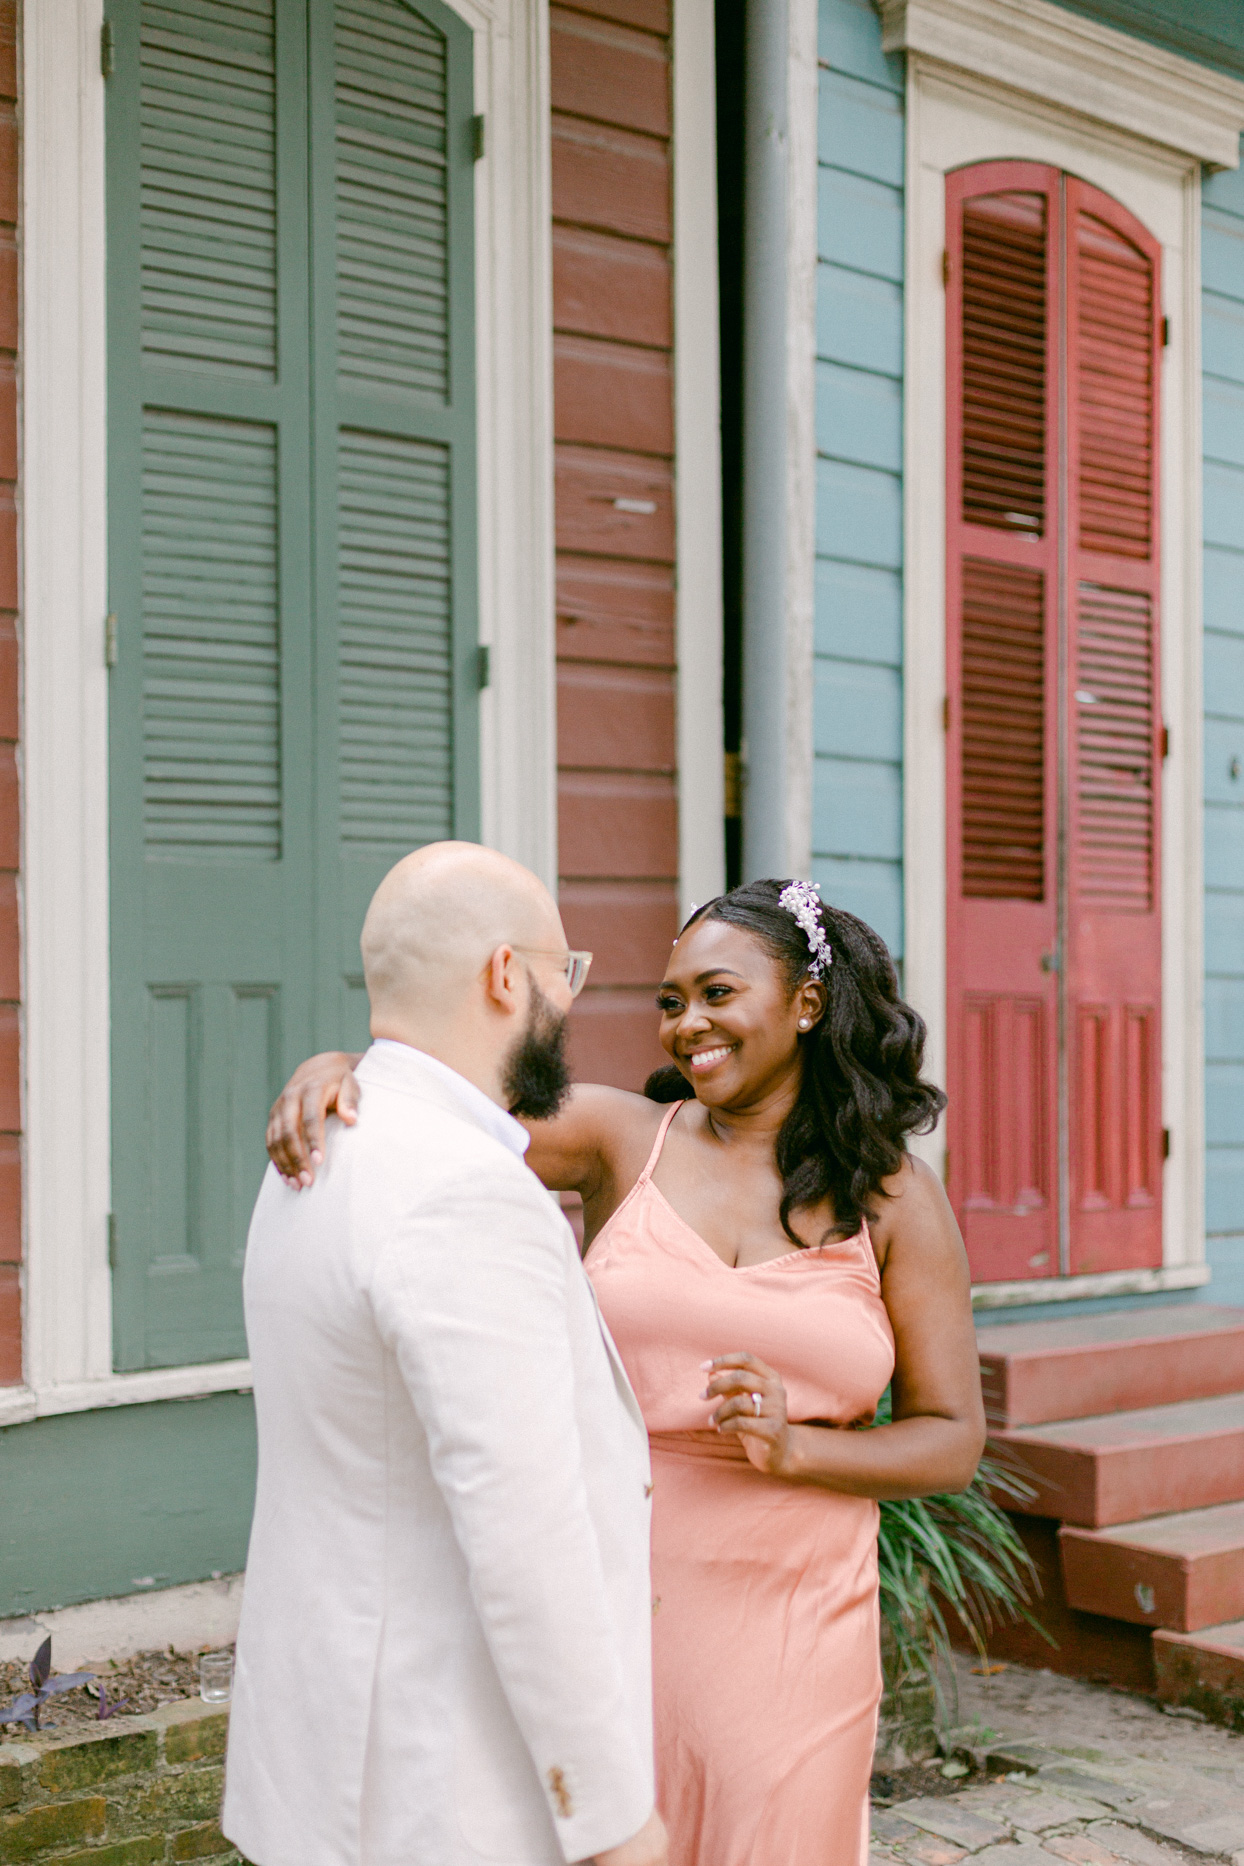 wedding couple smiling at each other in front of colorful house